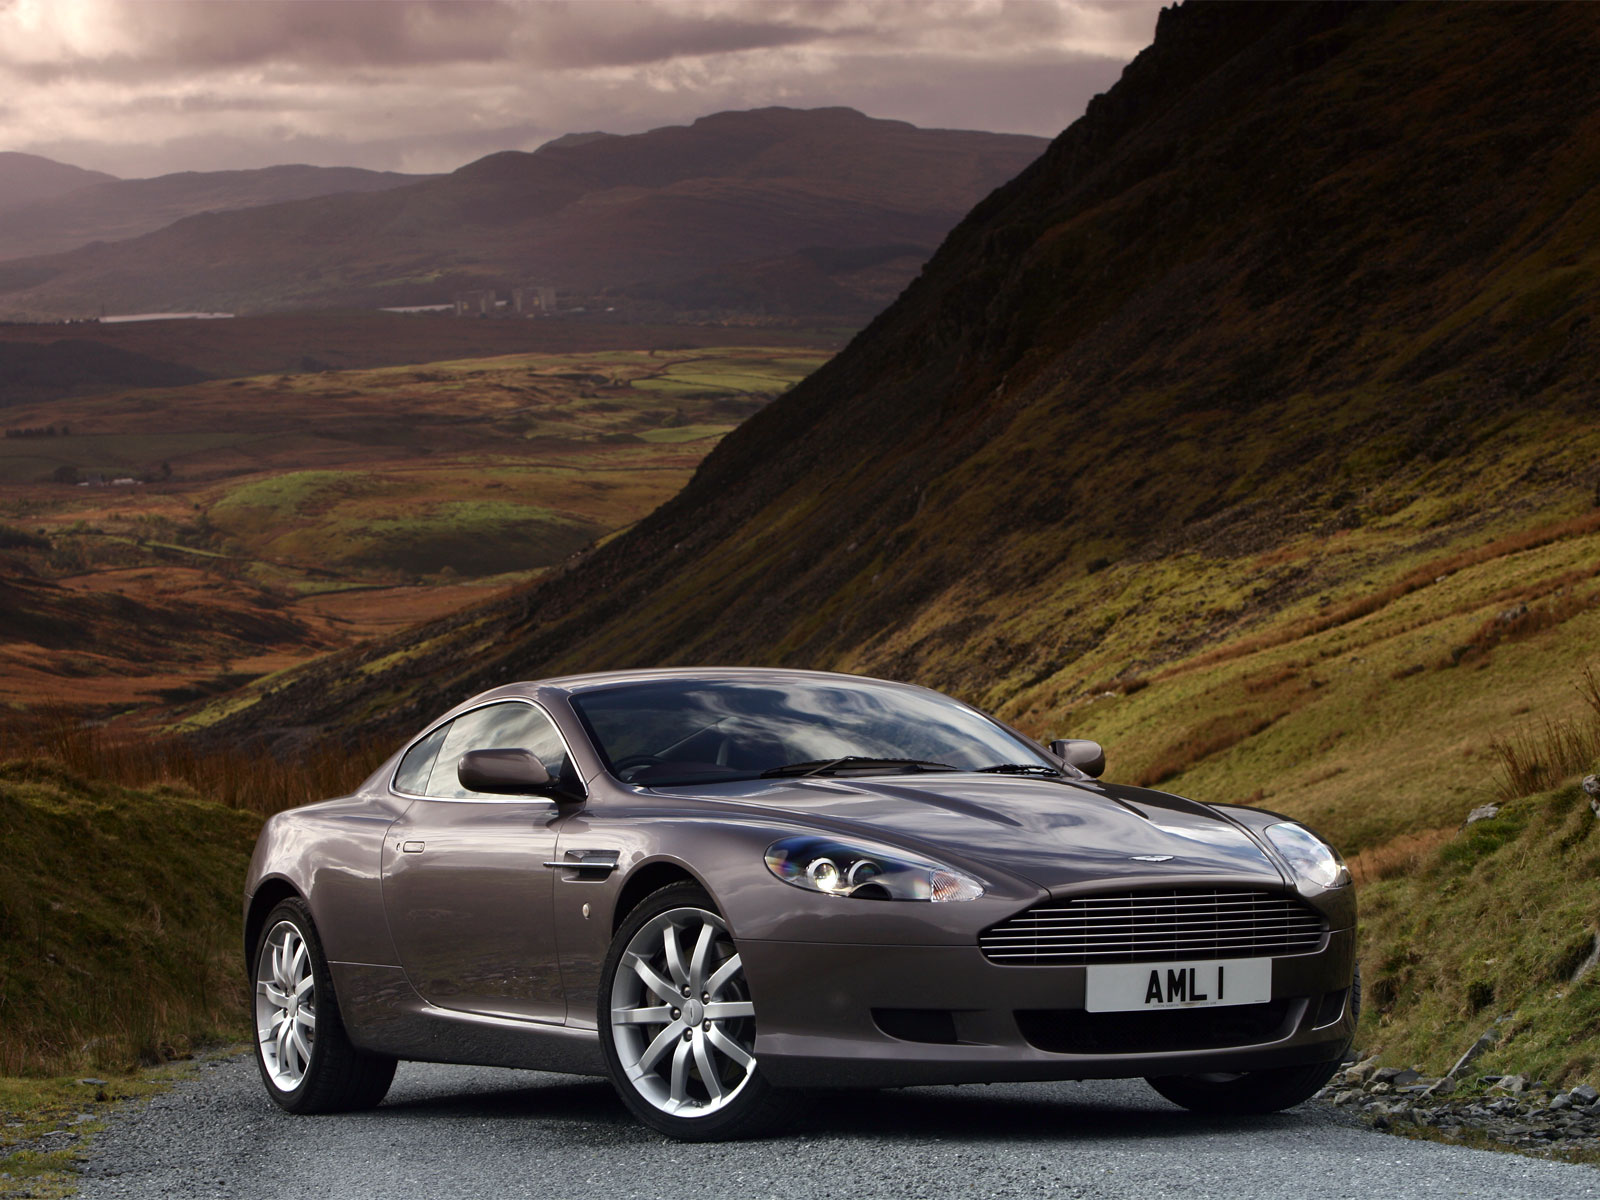 aston martin wallpaper (Aston Martin DB)